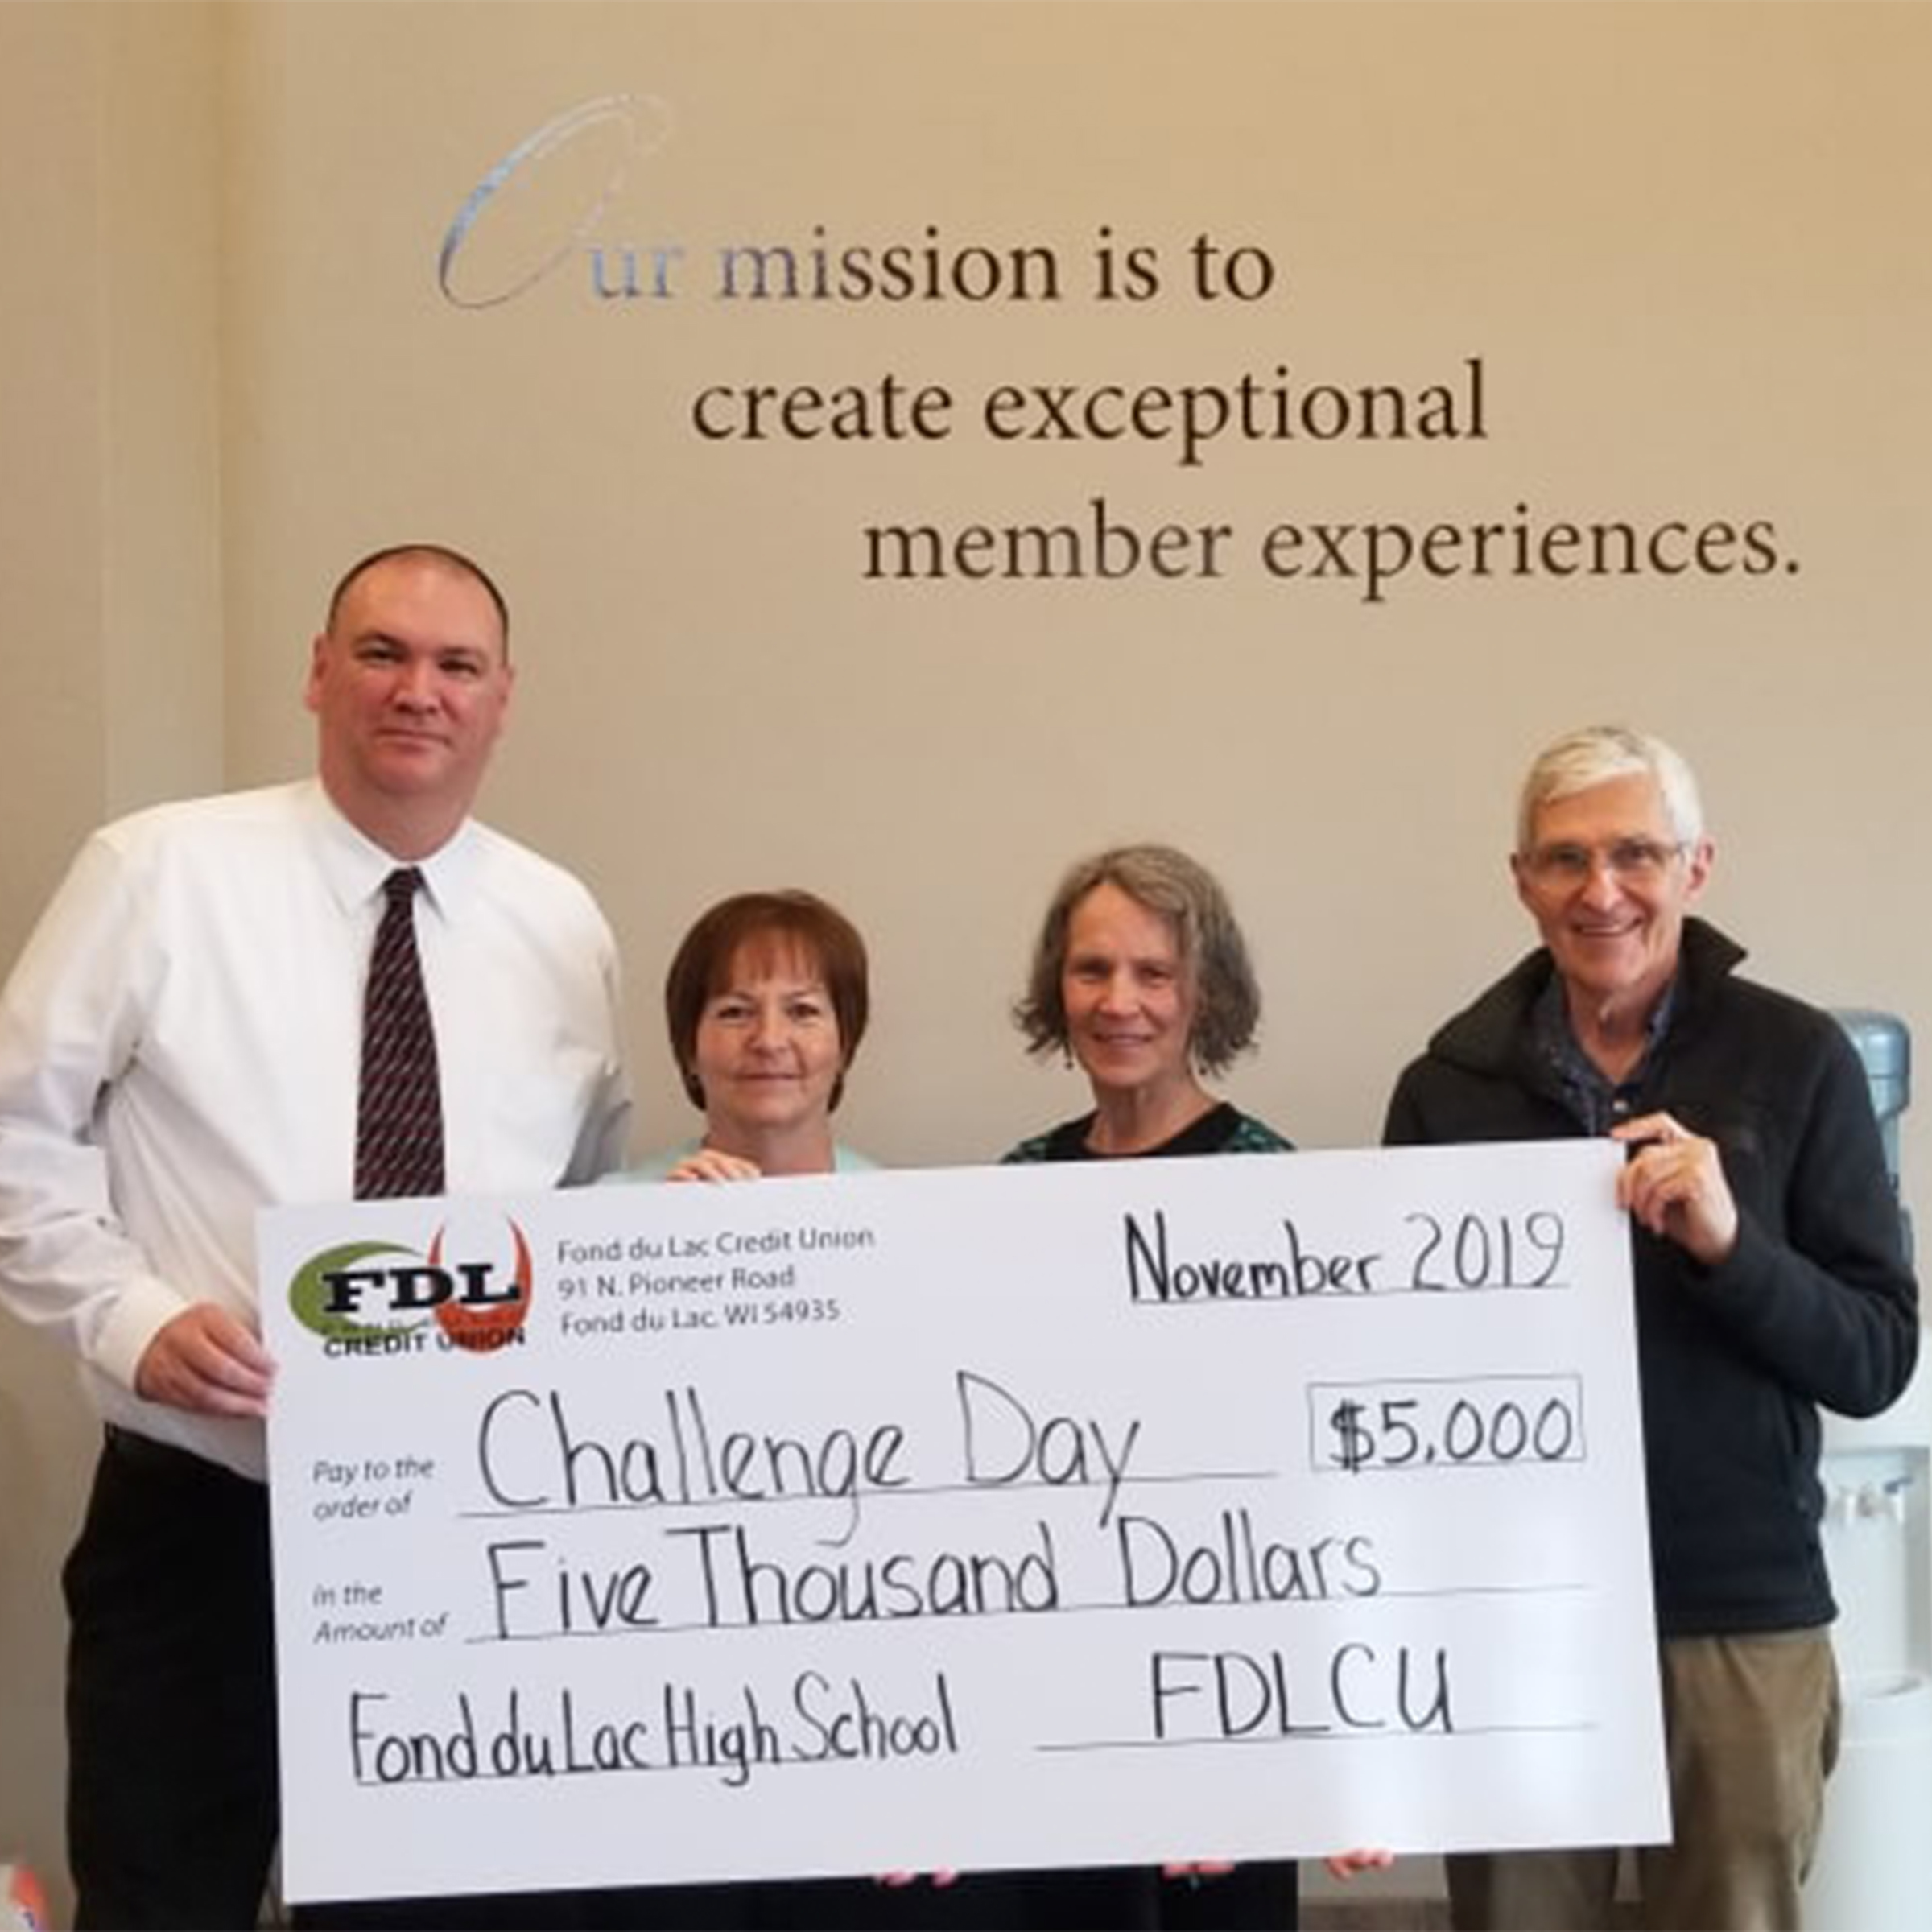 holding big check for Challenge Day